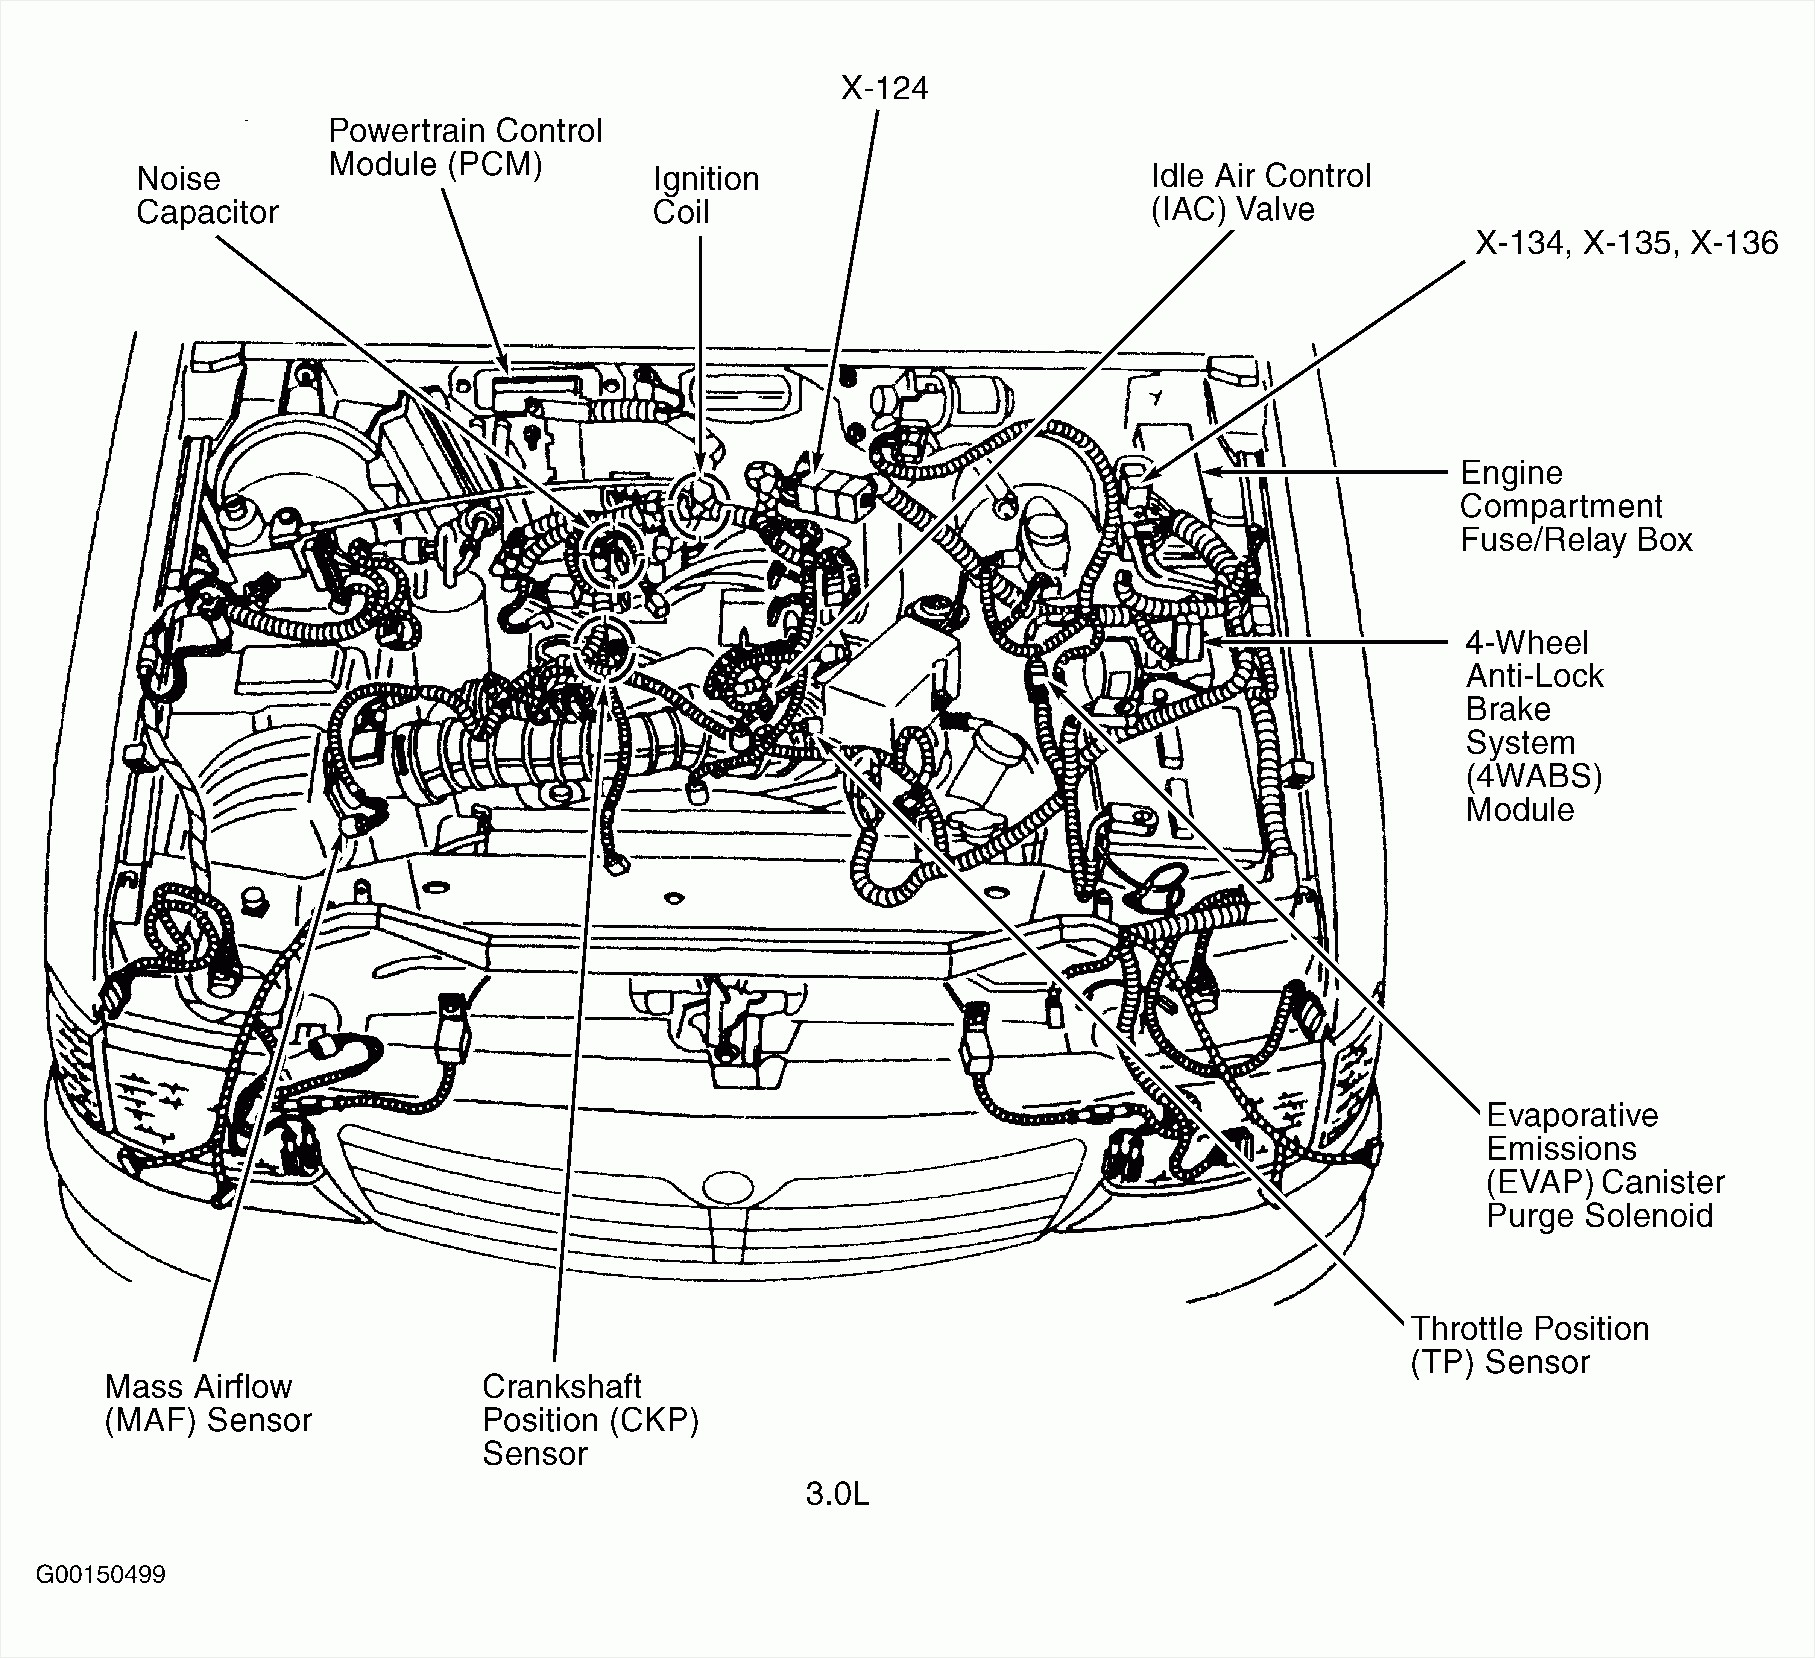 2001 Oldsmobile Alero Wiring Diagram